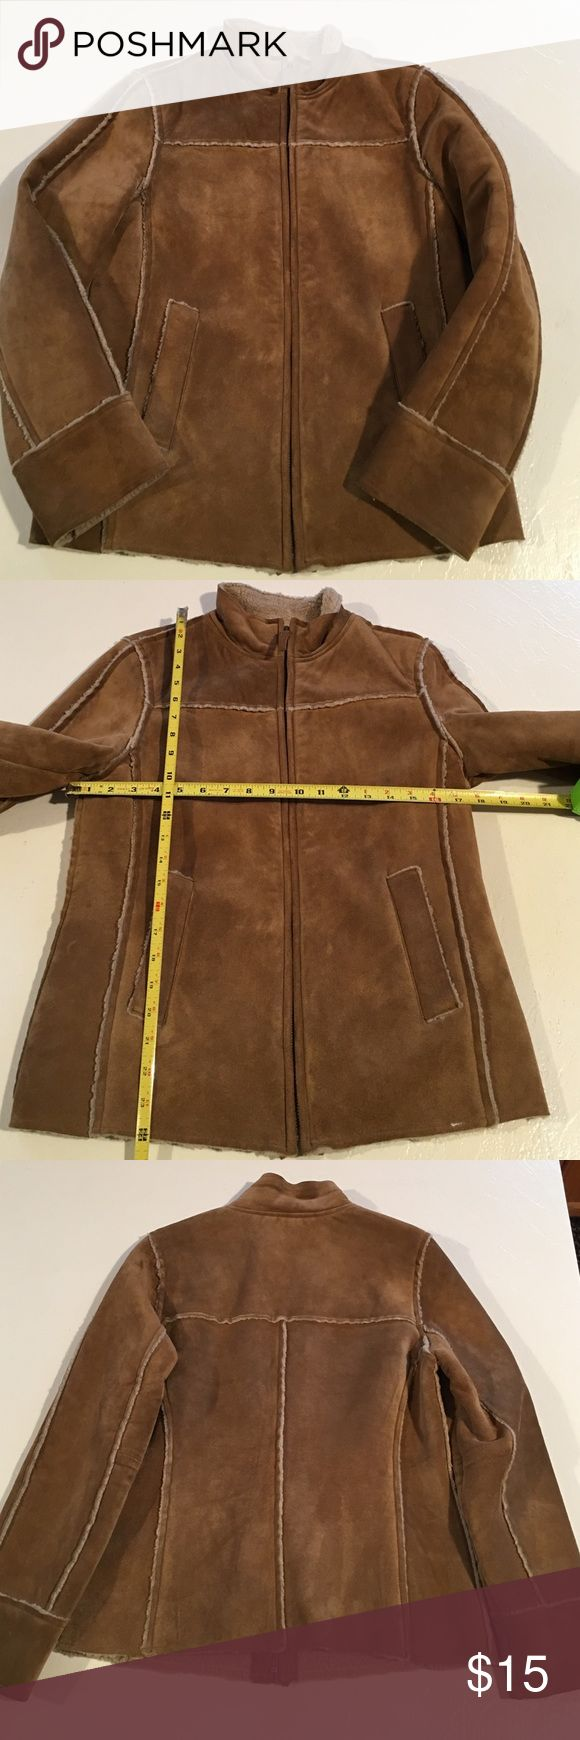 Women's GAP Leather Brown Jacket, Small You will be purchasing a Women's GAP Brown Leather Jacket, Size Small. Please see photos for measurements to determine fit. It is used. If you have any further questions, please do not hesitate to ask. Thanks for Looking! MP GAP Jackets & Coats